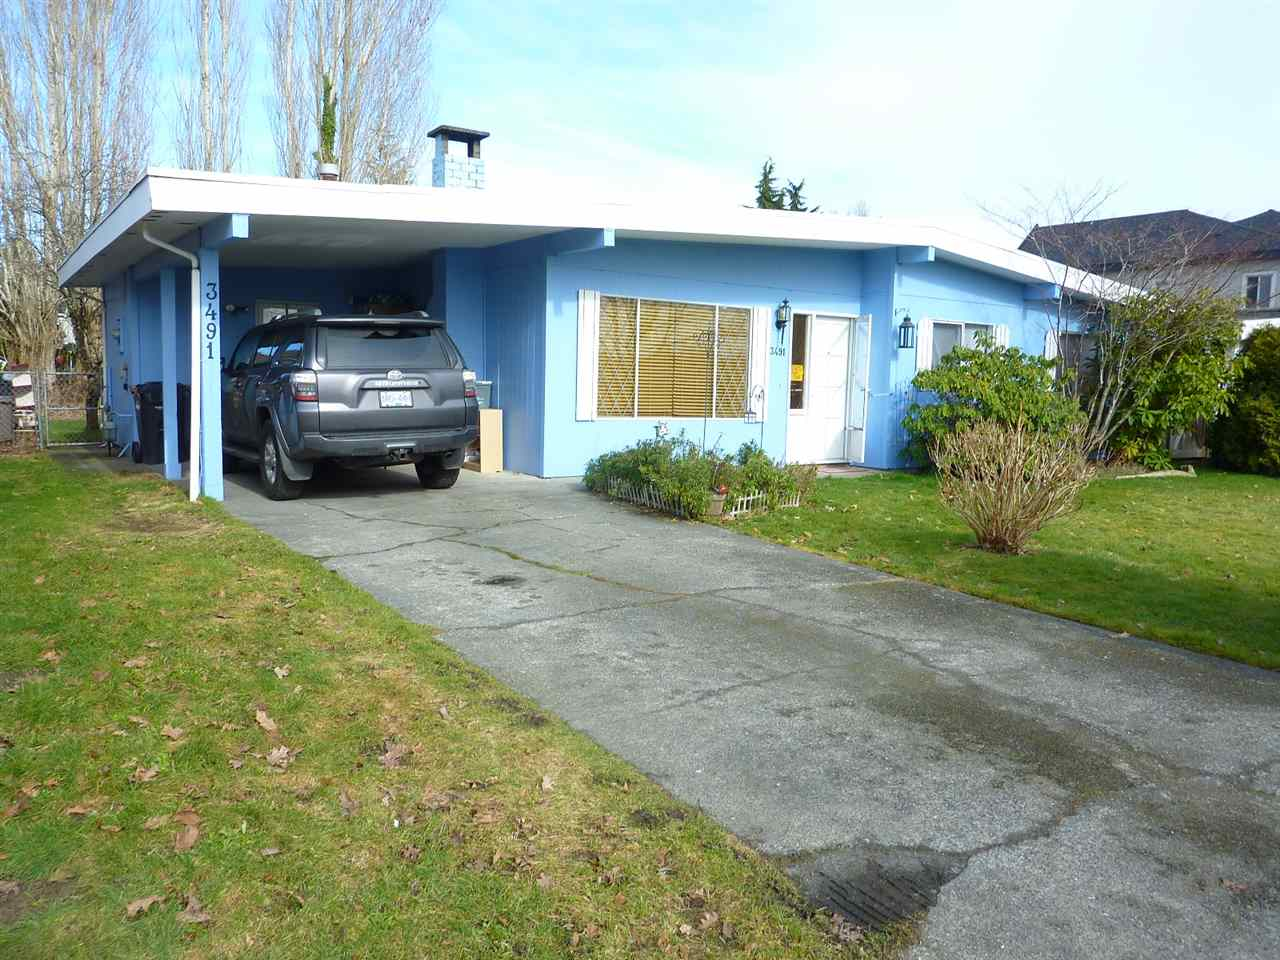 Photo 2: 3491 SPRINGFORD Avenue in Richmond: Steveston North House for sale : MLS® # R2139973